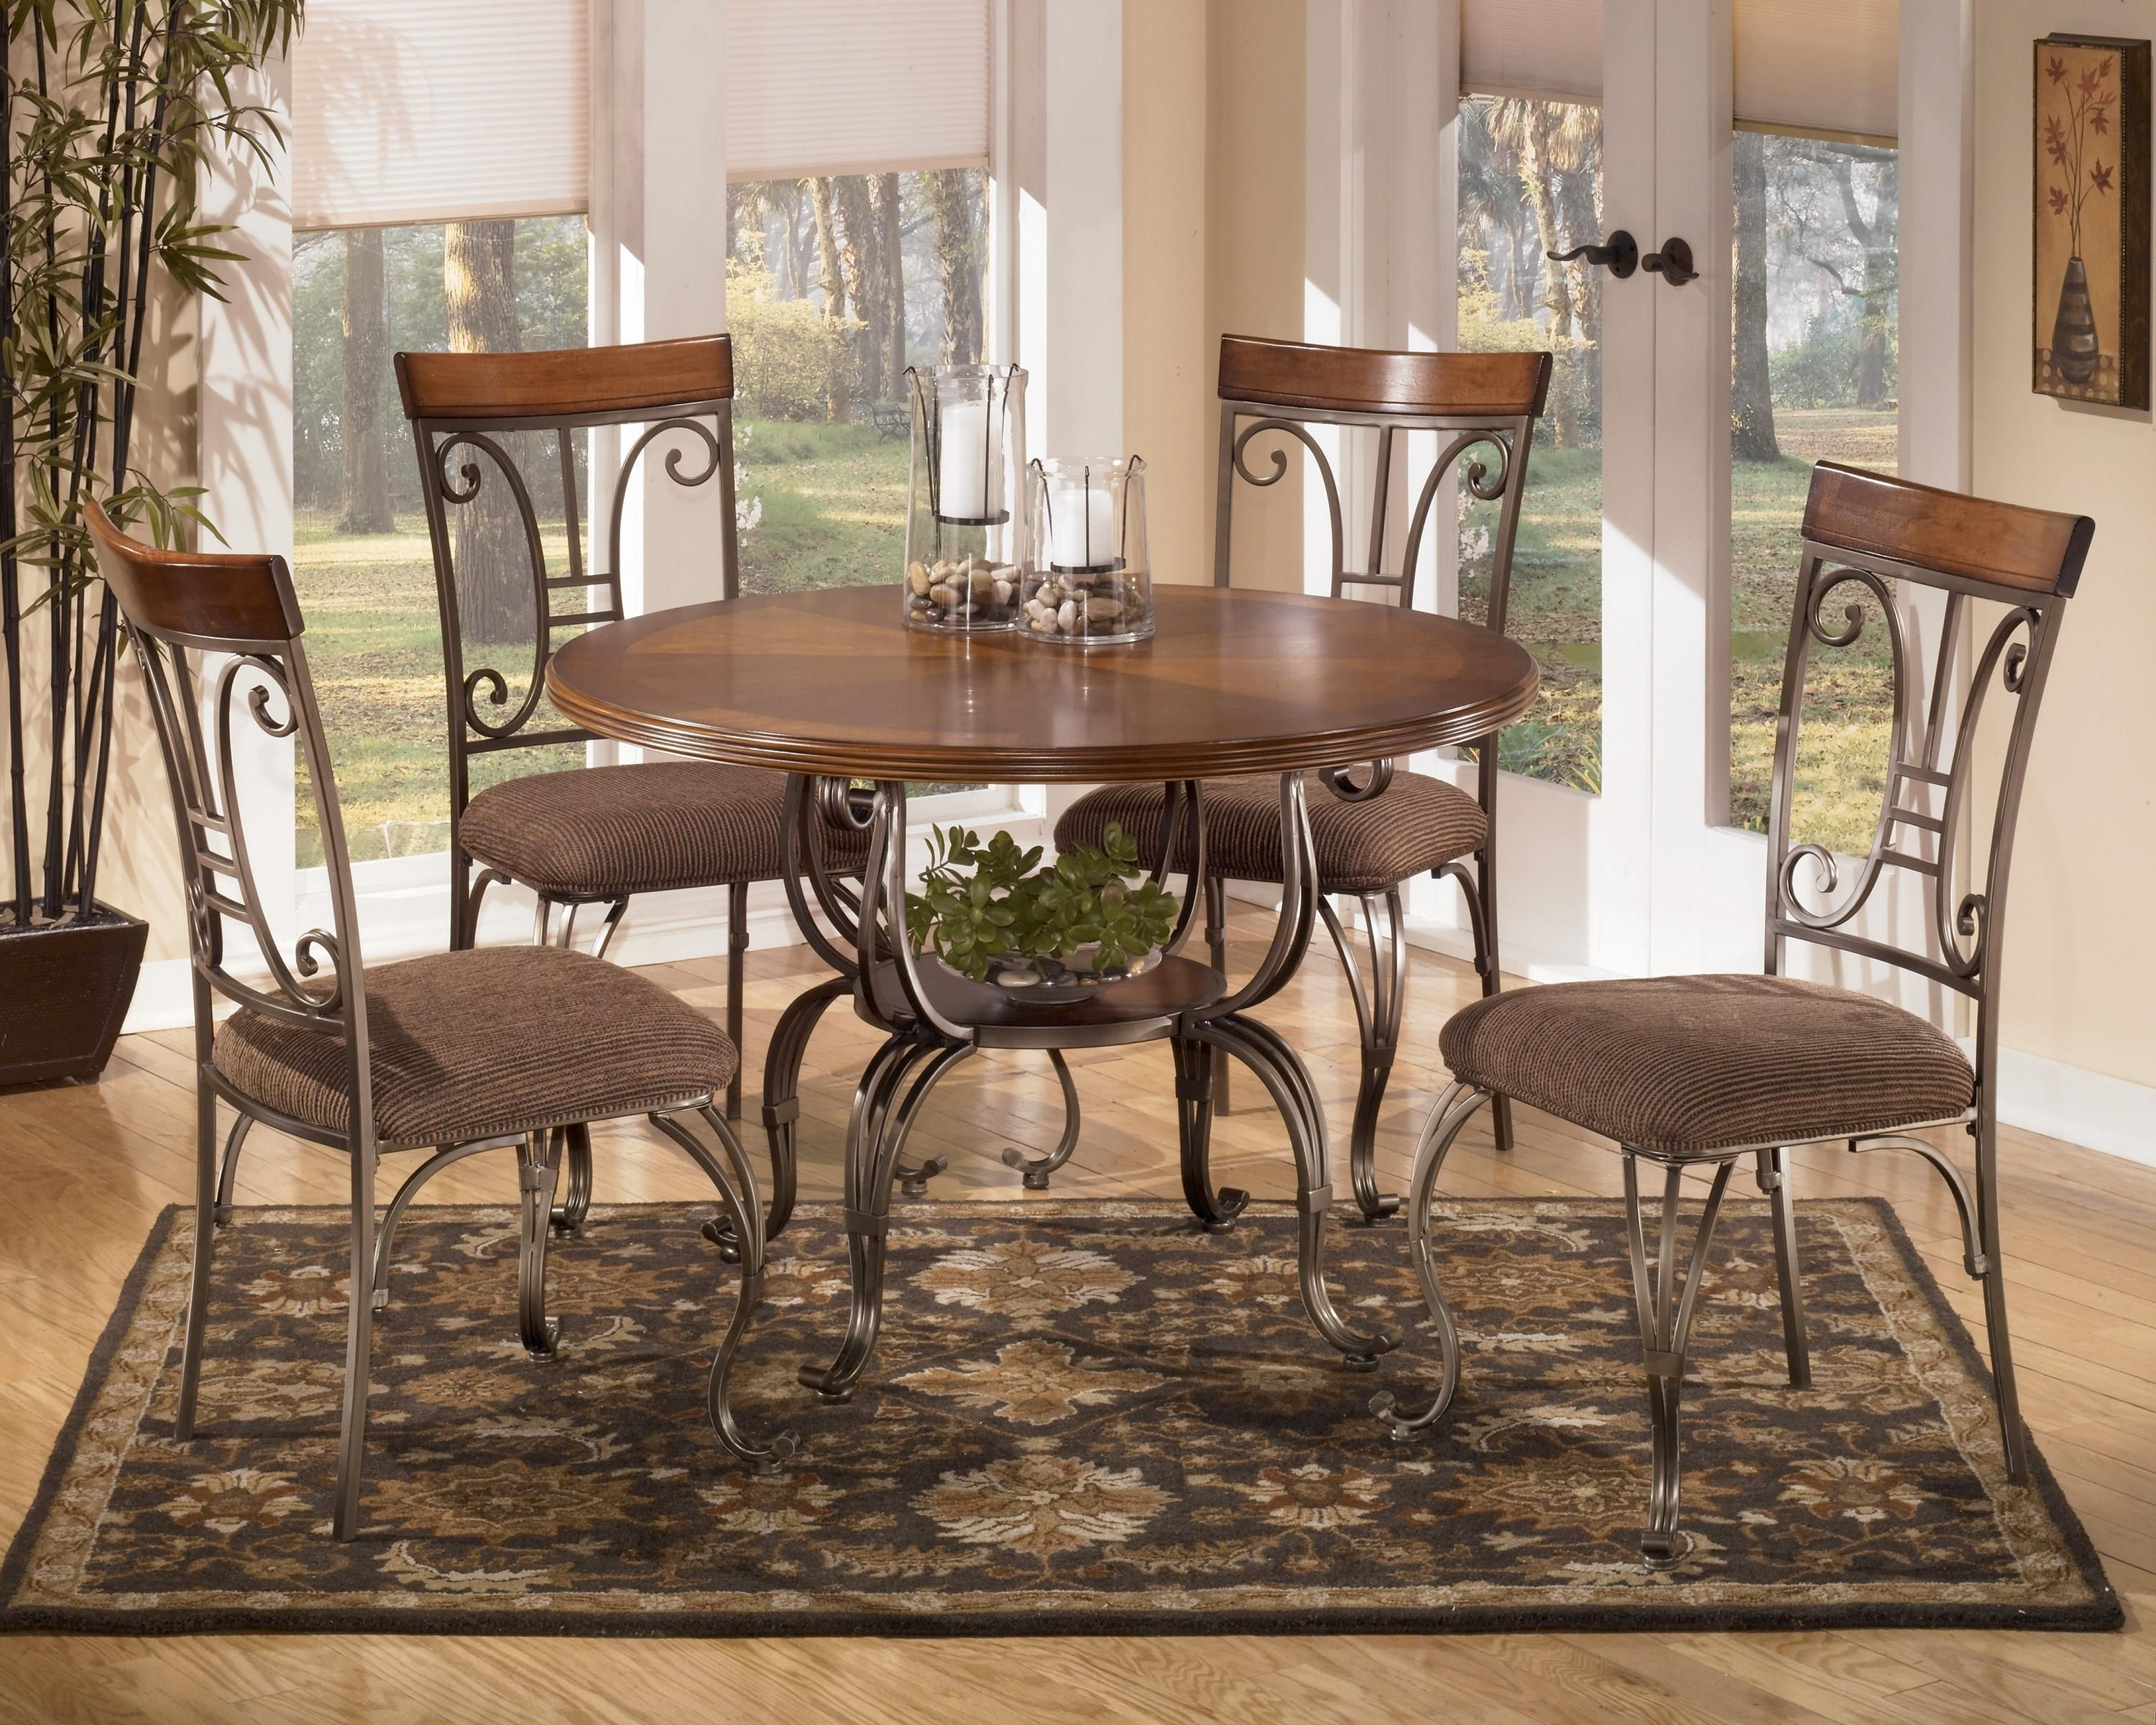 Plentywood 5 Piece Round Dining Table Setsignature Design For Recent Candice Ii 5 Piece Round Dining Sets With Slat Back Side Chairs (View 11 of 20)